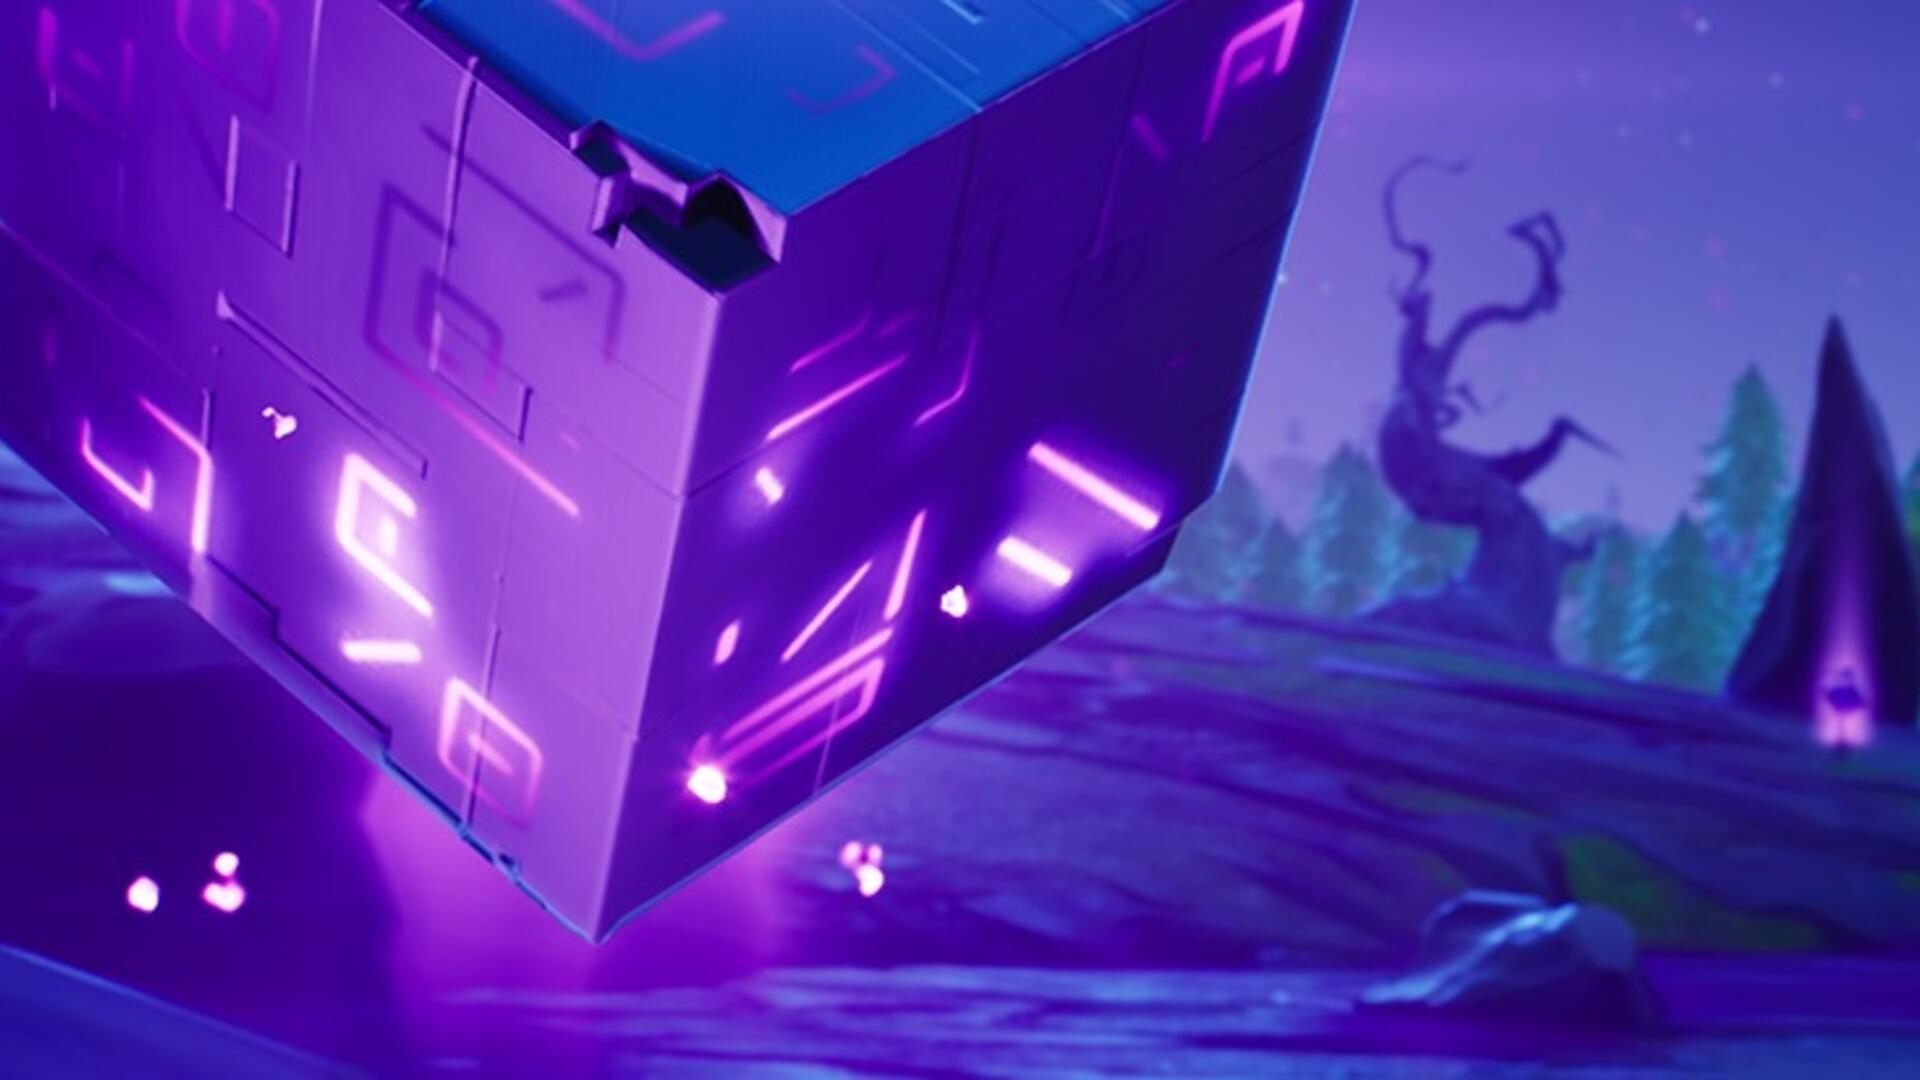 Fortnite Season 6 New Map Locations - Floating Islands, Corrupted Areas, Corn Fields, Haunted Castle